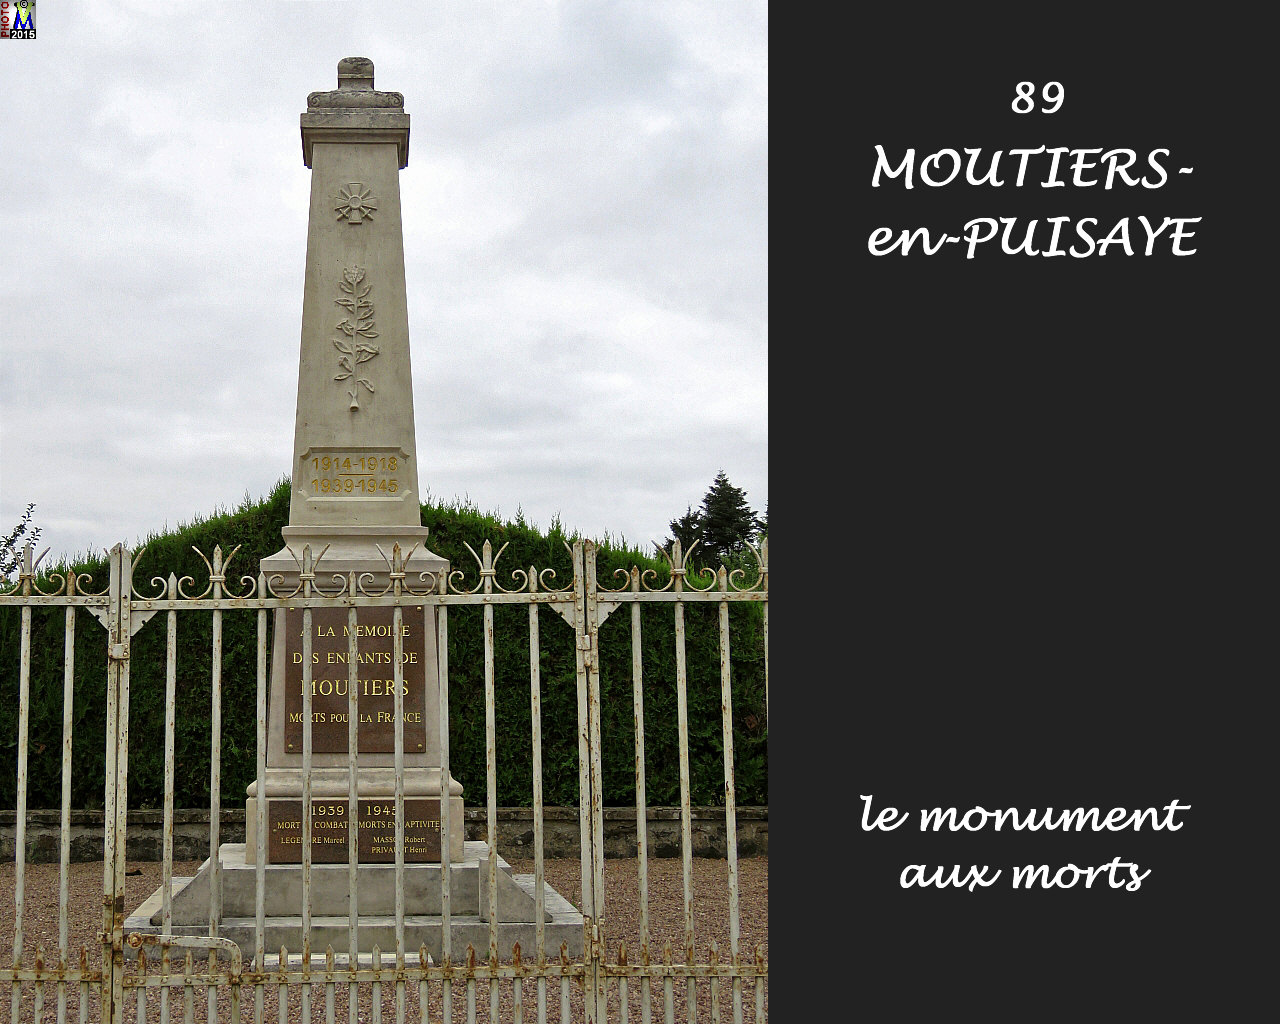 89MOUTIERS-PUISAYE_morts_100.jpg